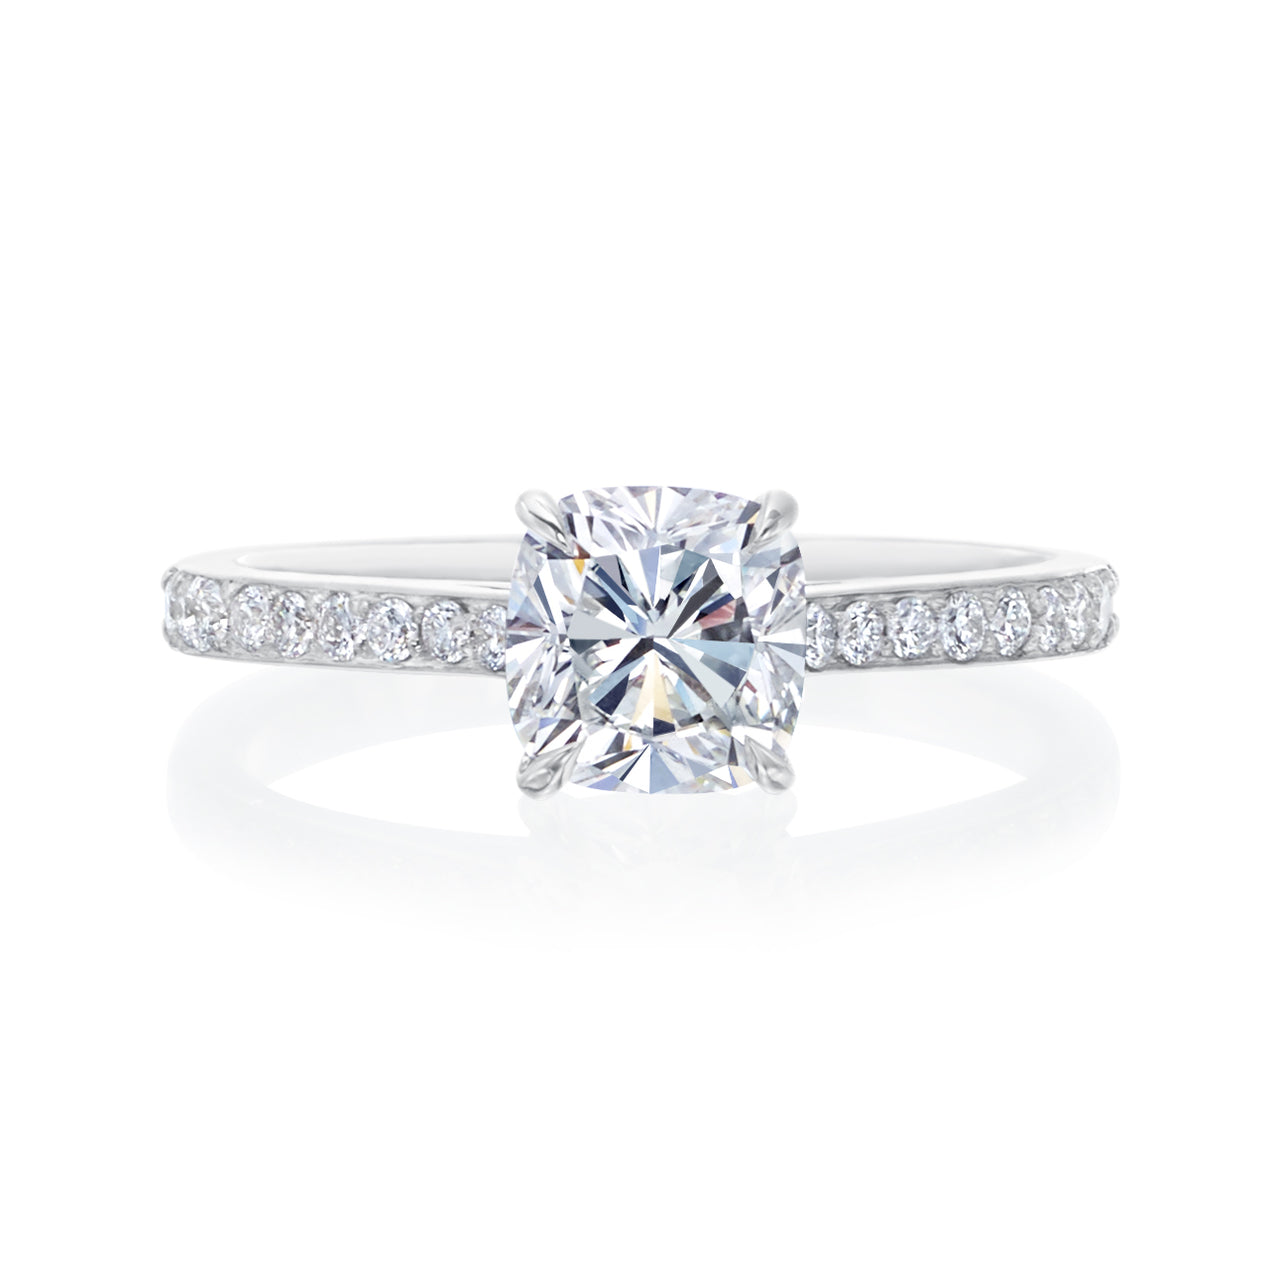 Fink's Exclusive FireCushion Diamond Engagement Ring with Diamond Pavé Shank